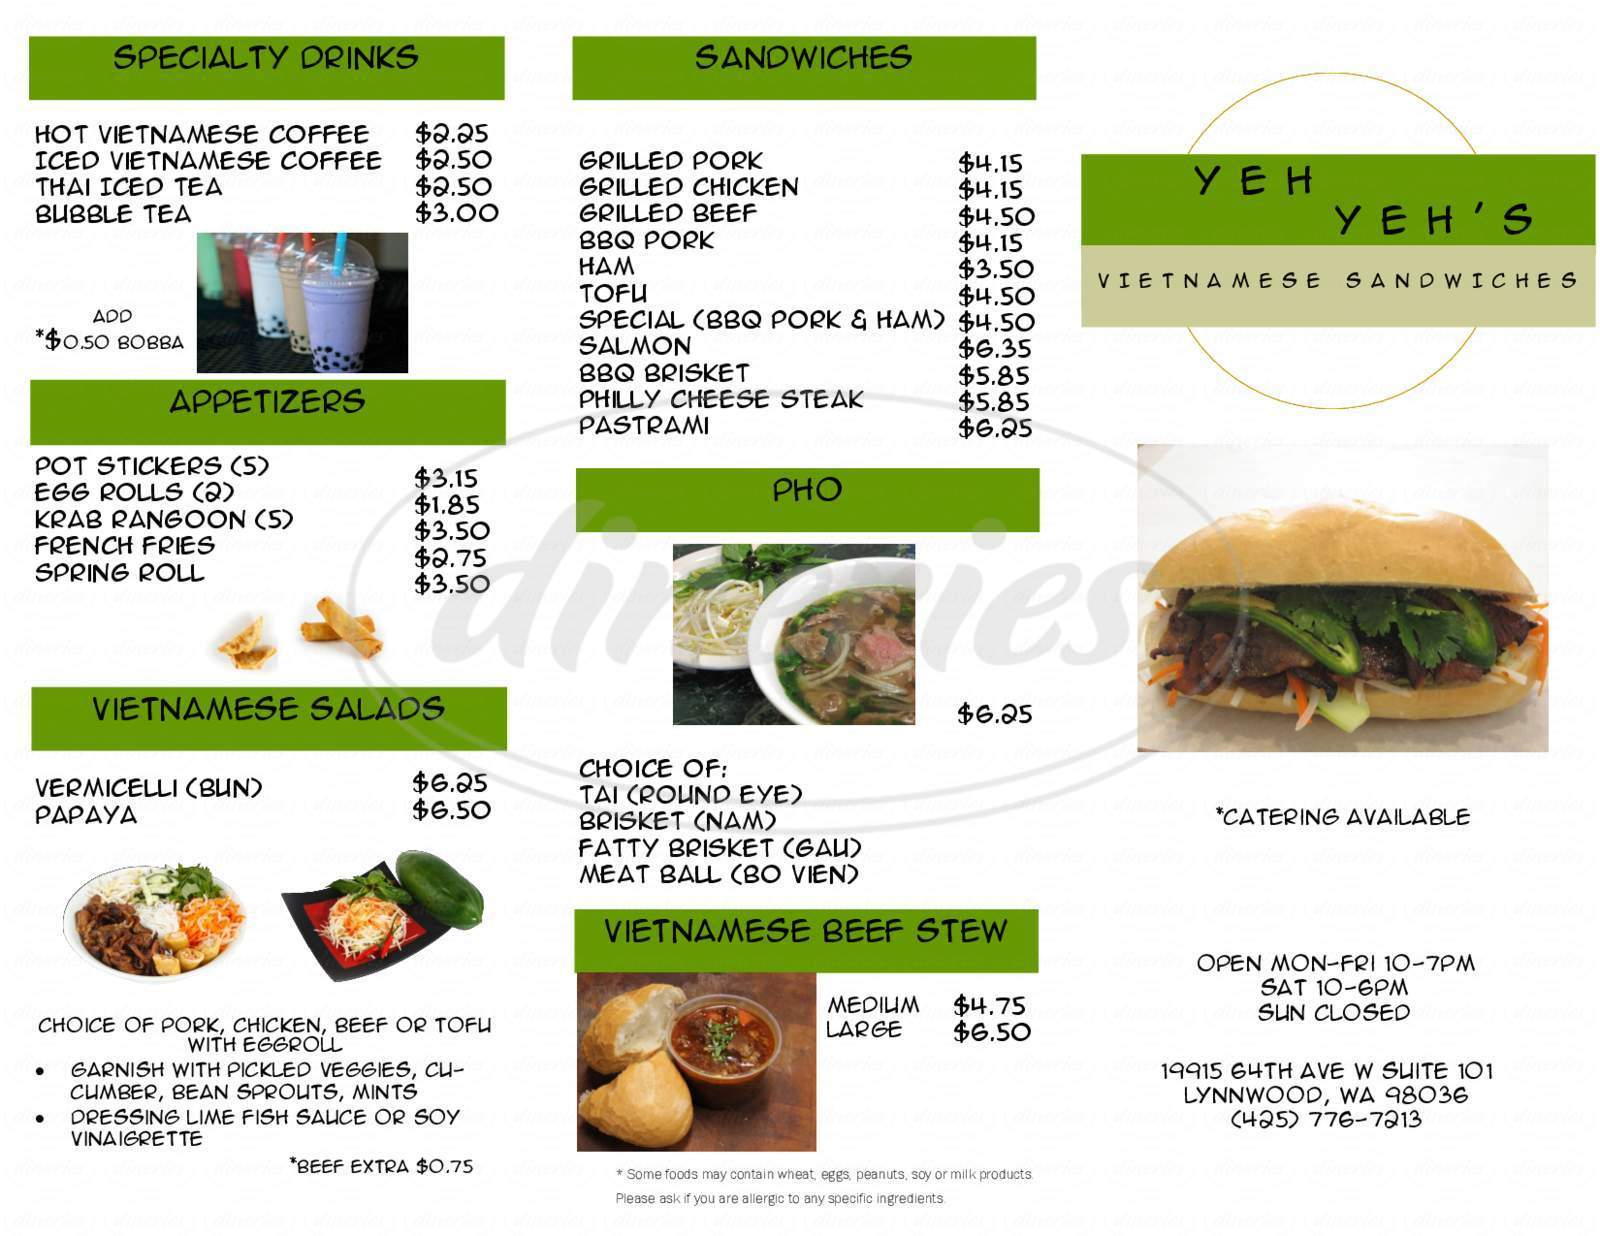 menu for Yeh Yeh's Vietnamese Sandwiches